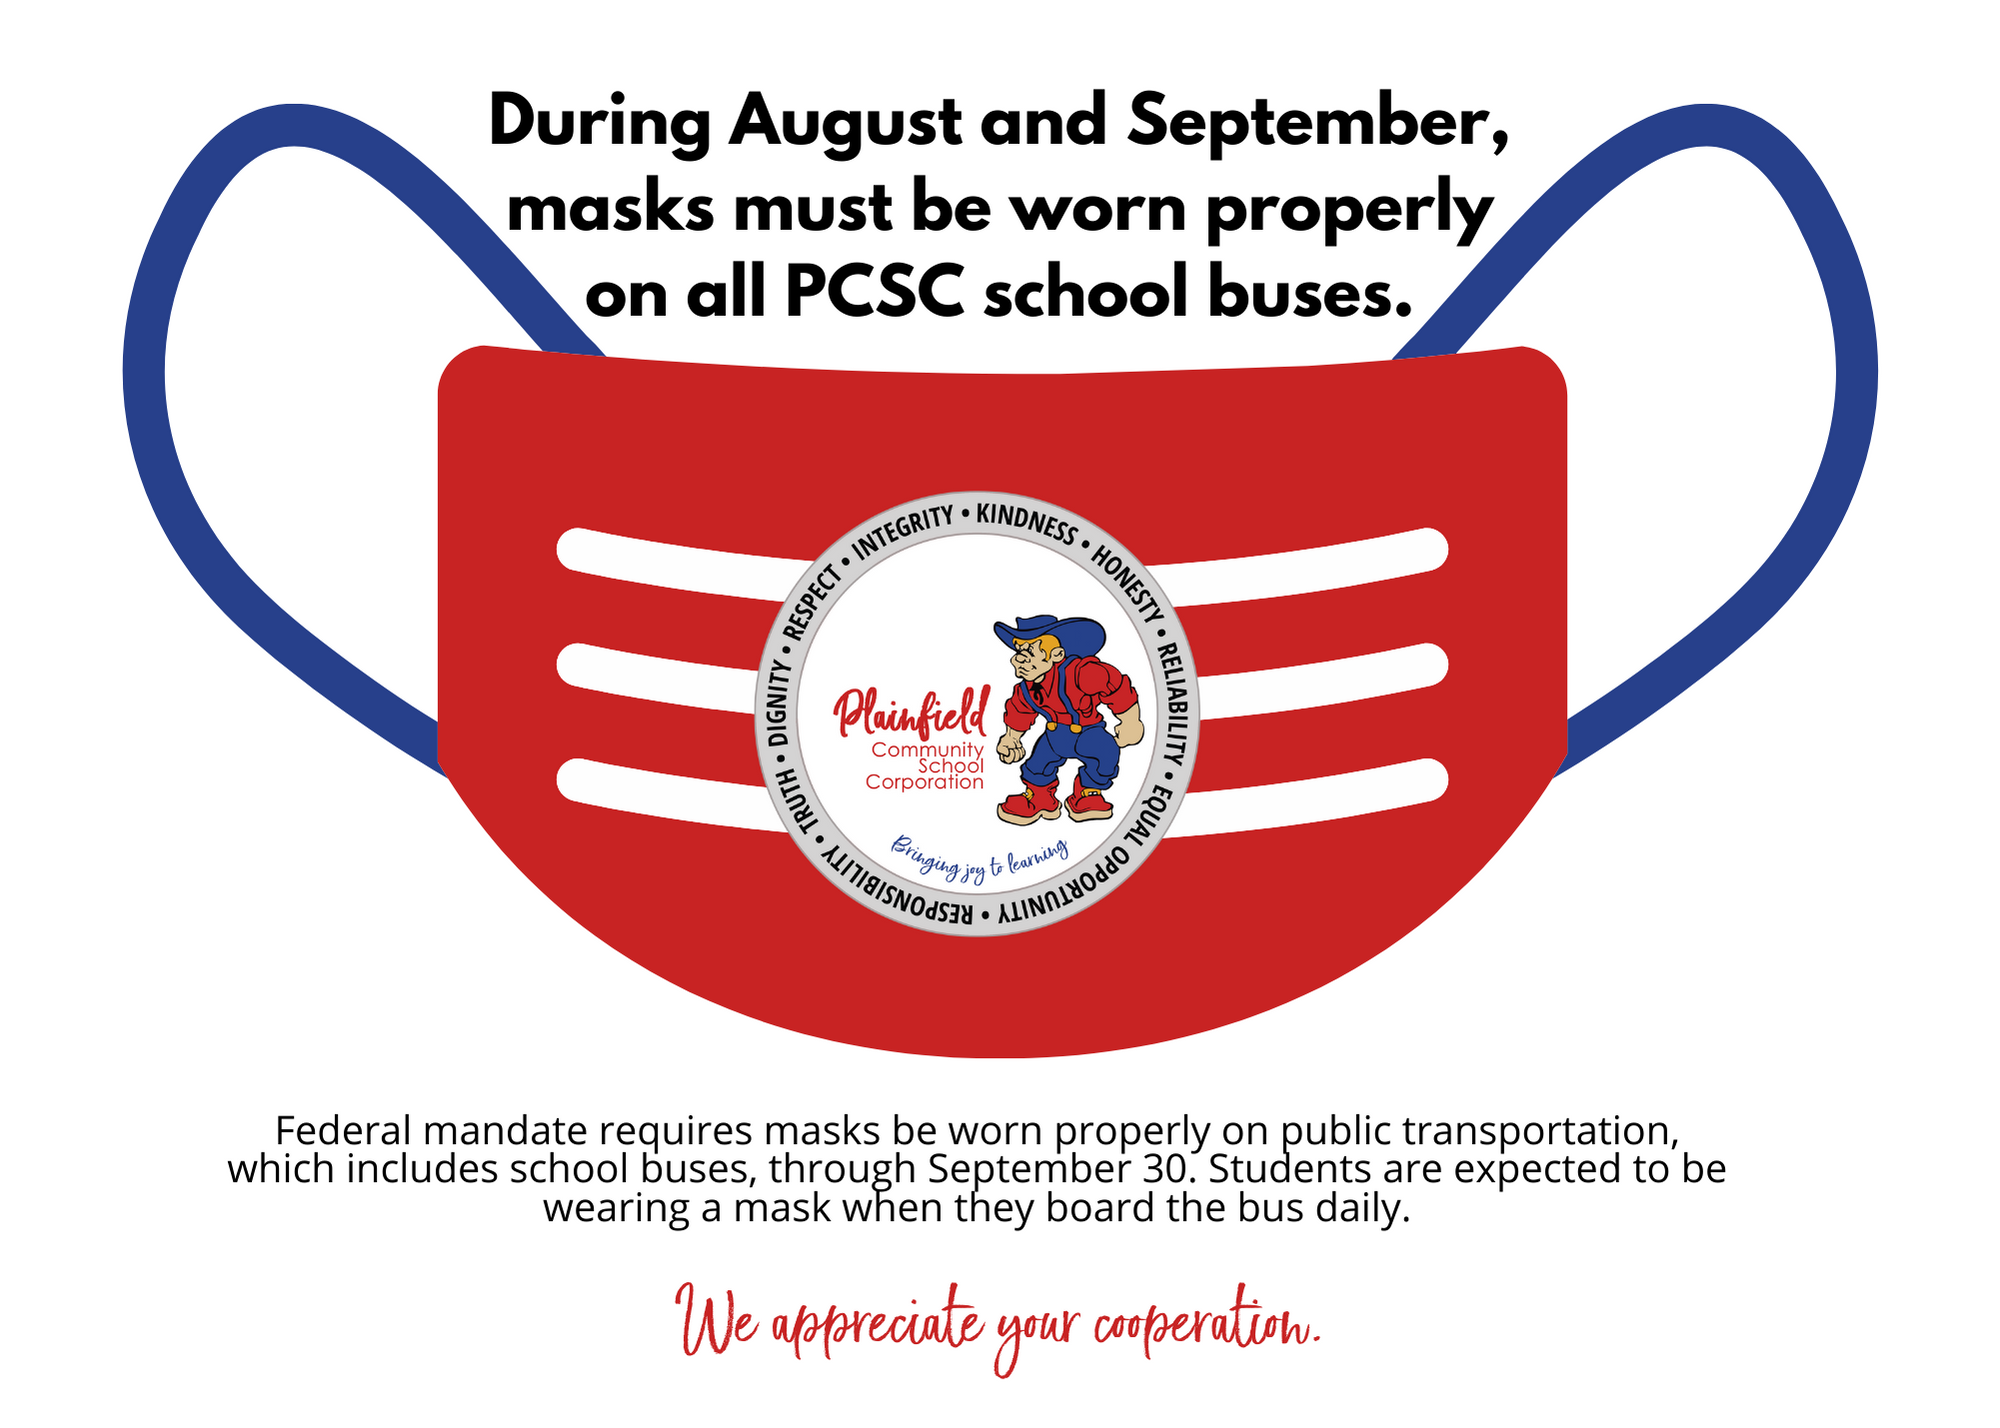 For August and September, based on federal mandate, masks are required on school buses.